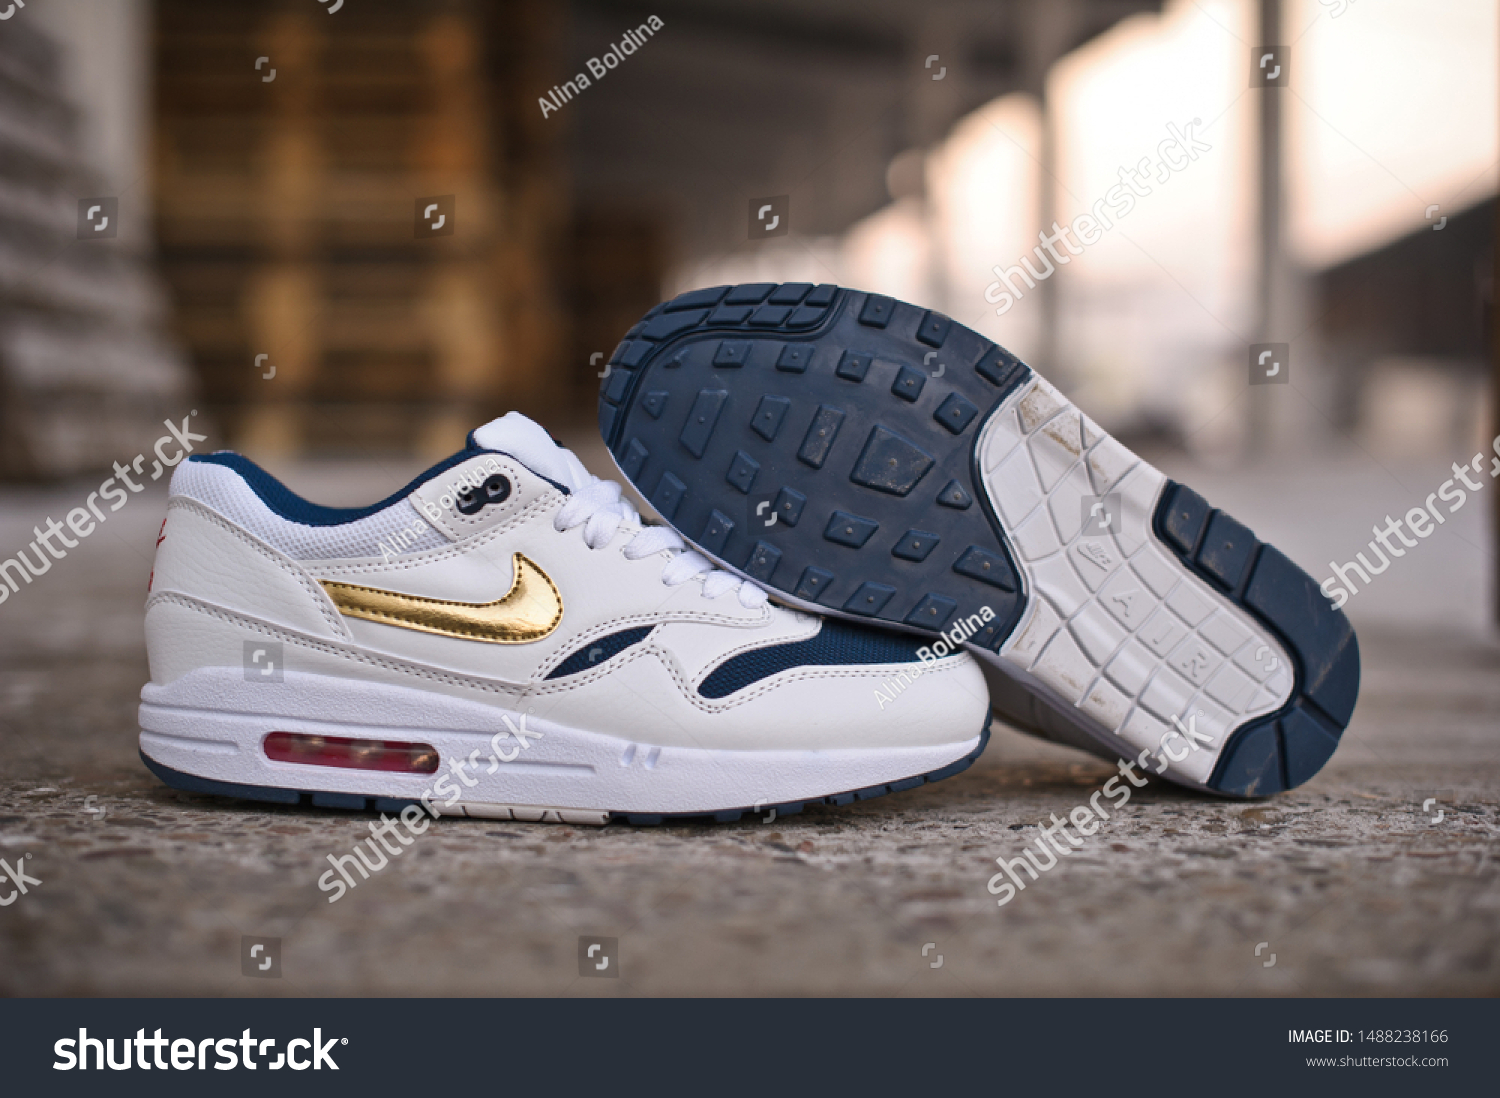 Nike Air Max 1 Essential Olympic Stock Photo (Edit Now) 1488238166